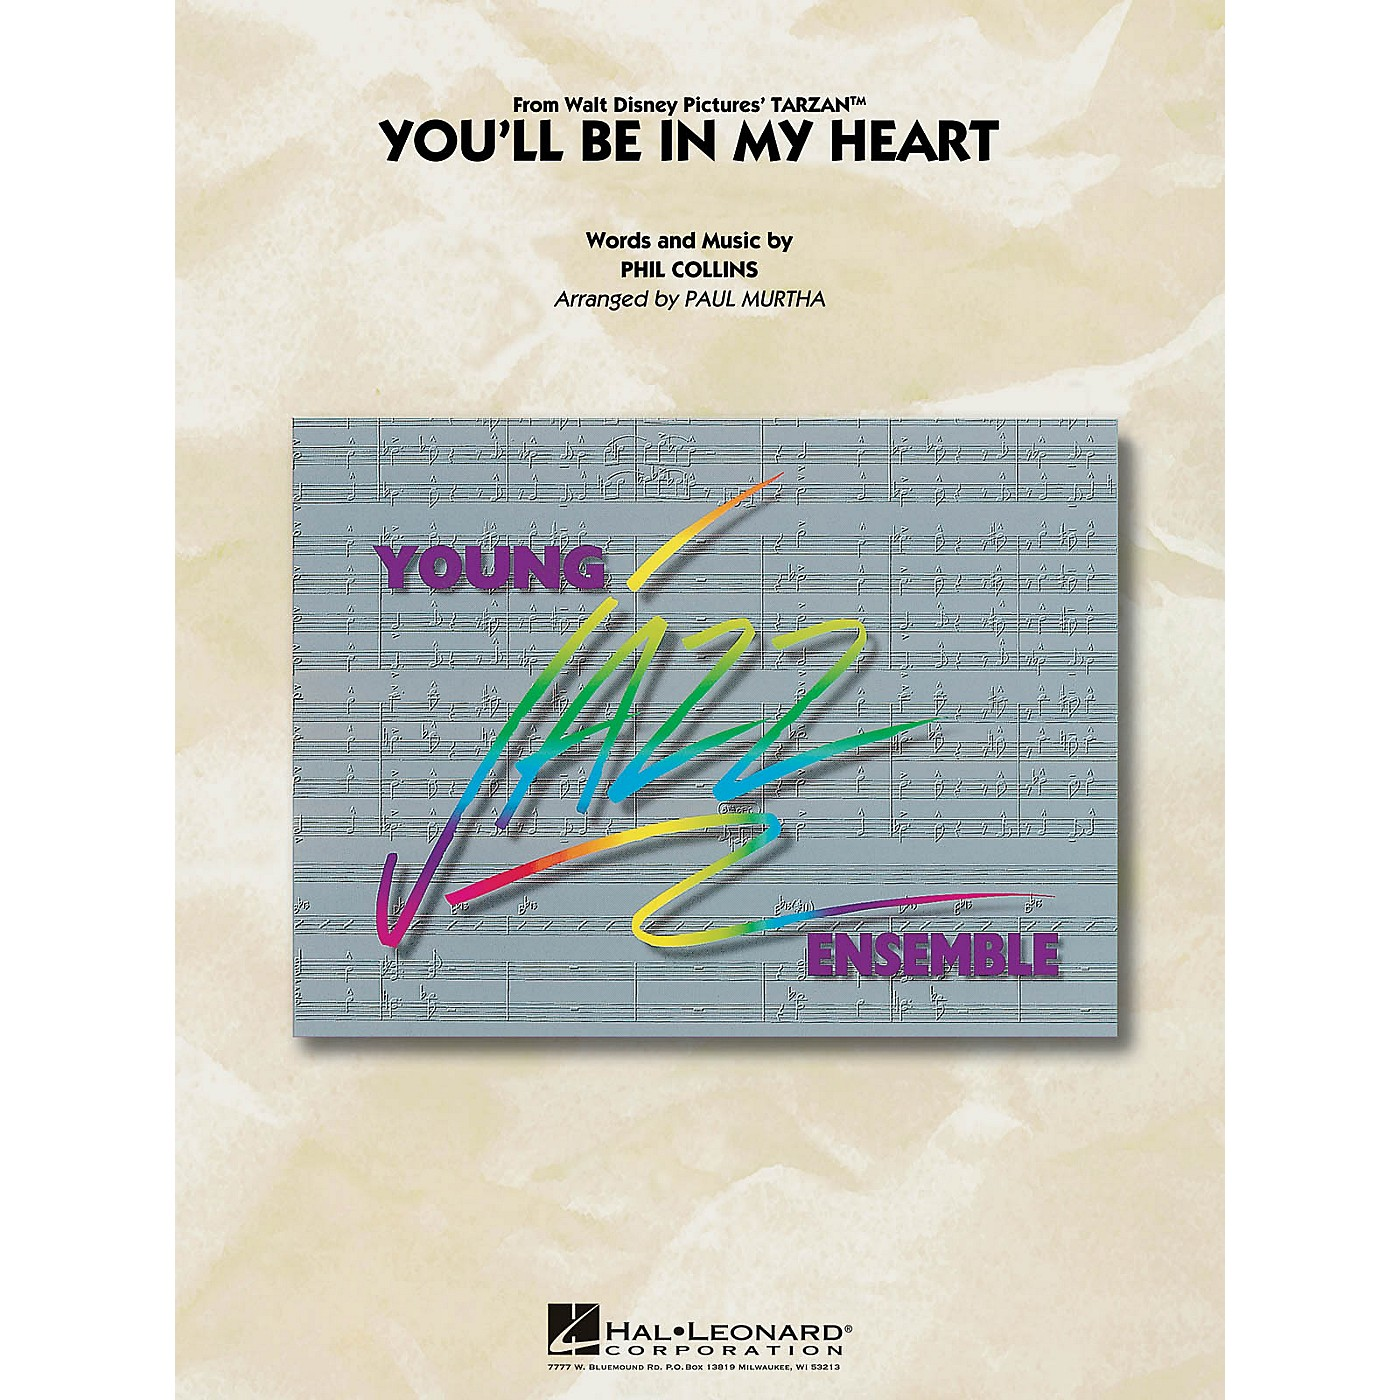 Hal Leonard You'll Be in My Heart Jazz Band Level 3 by Phil Collins Arranged by Paul Murtha thumbnail